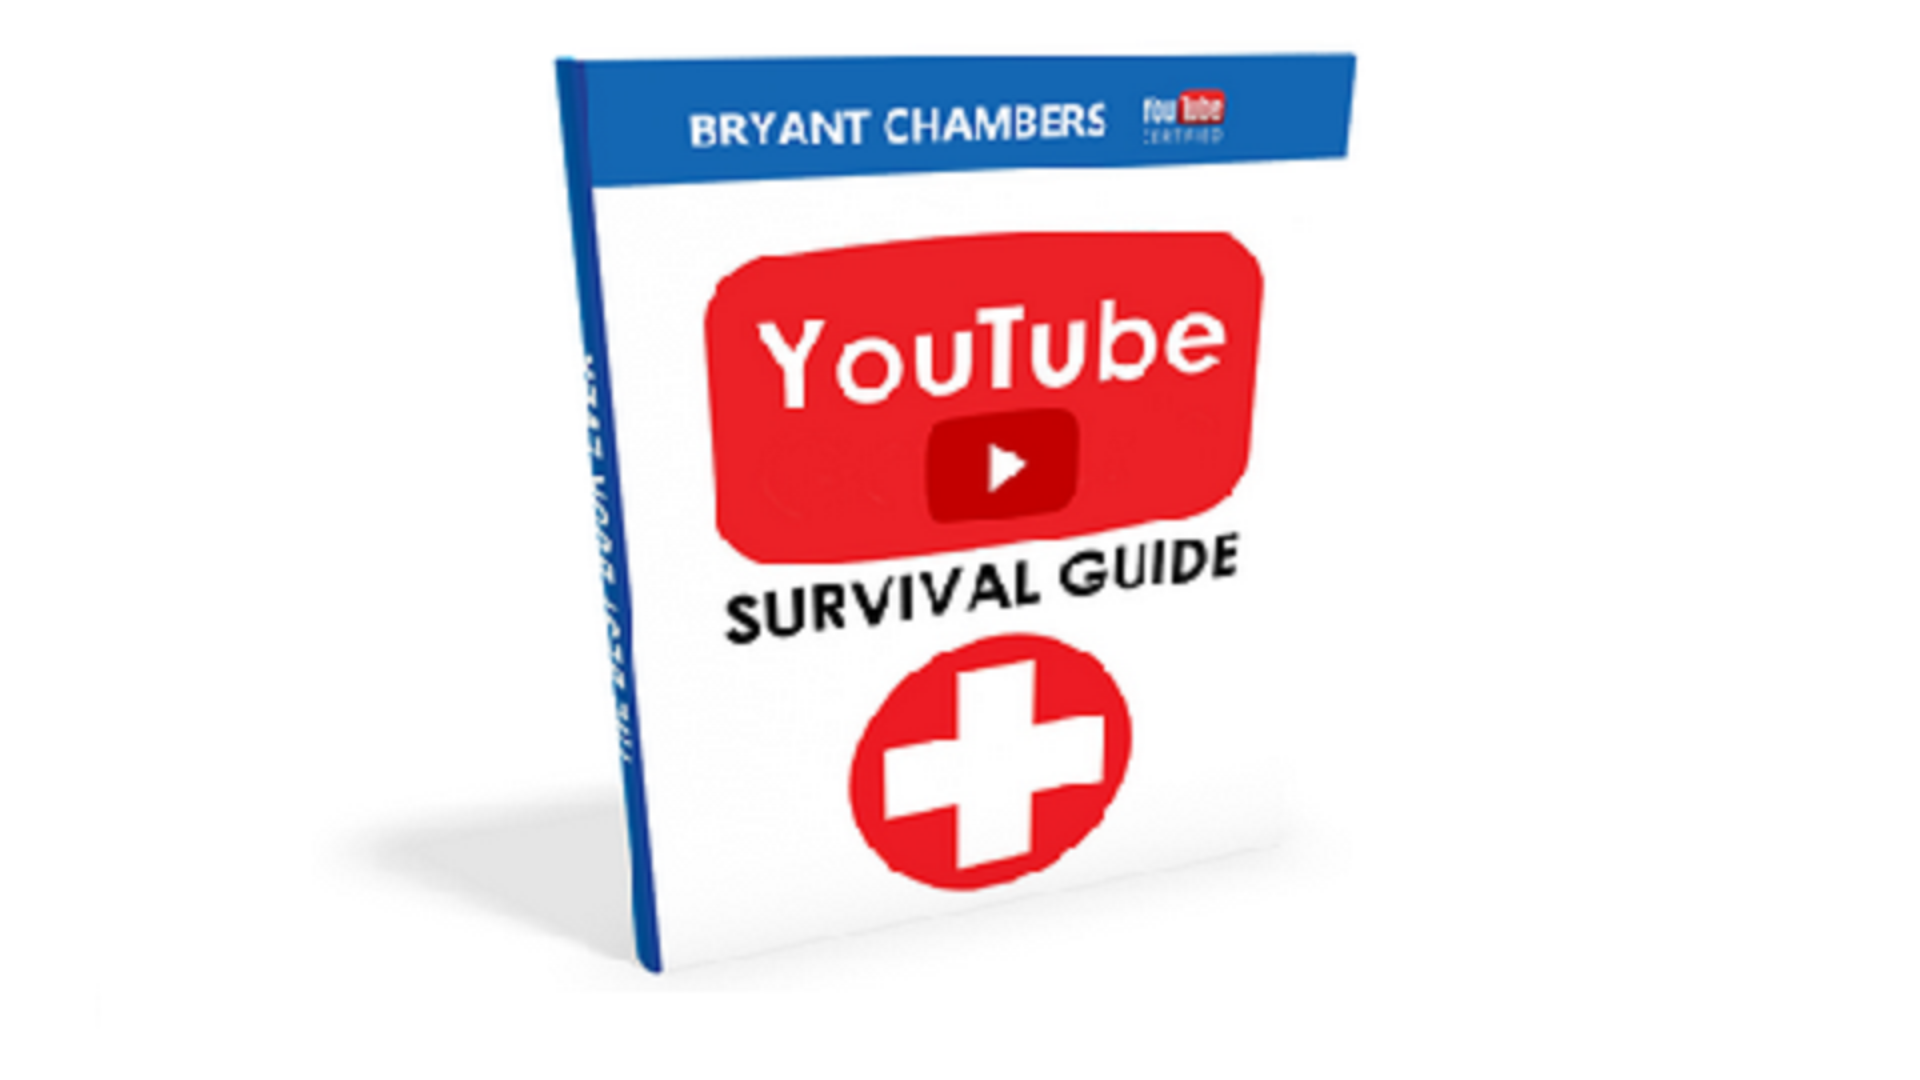 YouTube Survival Guide